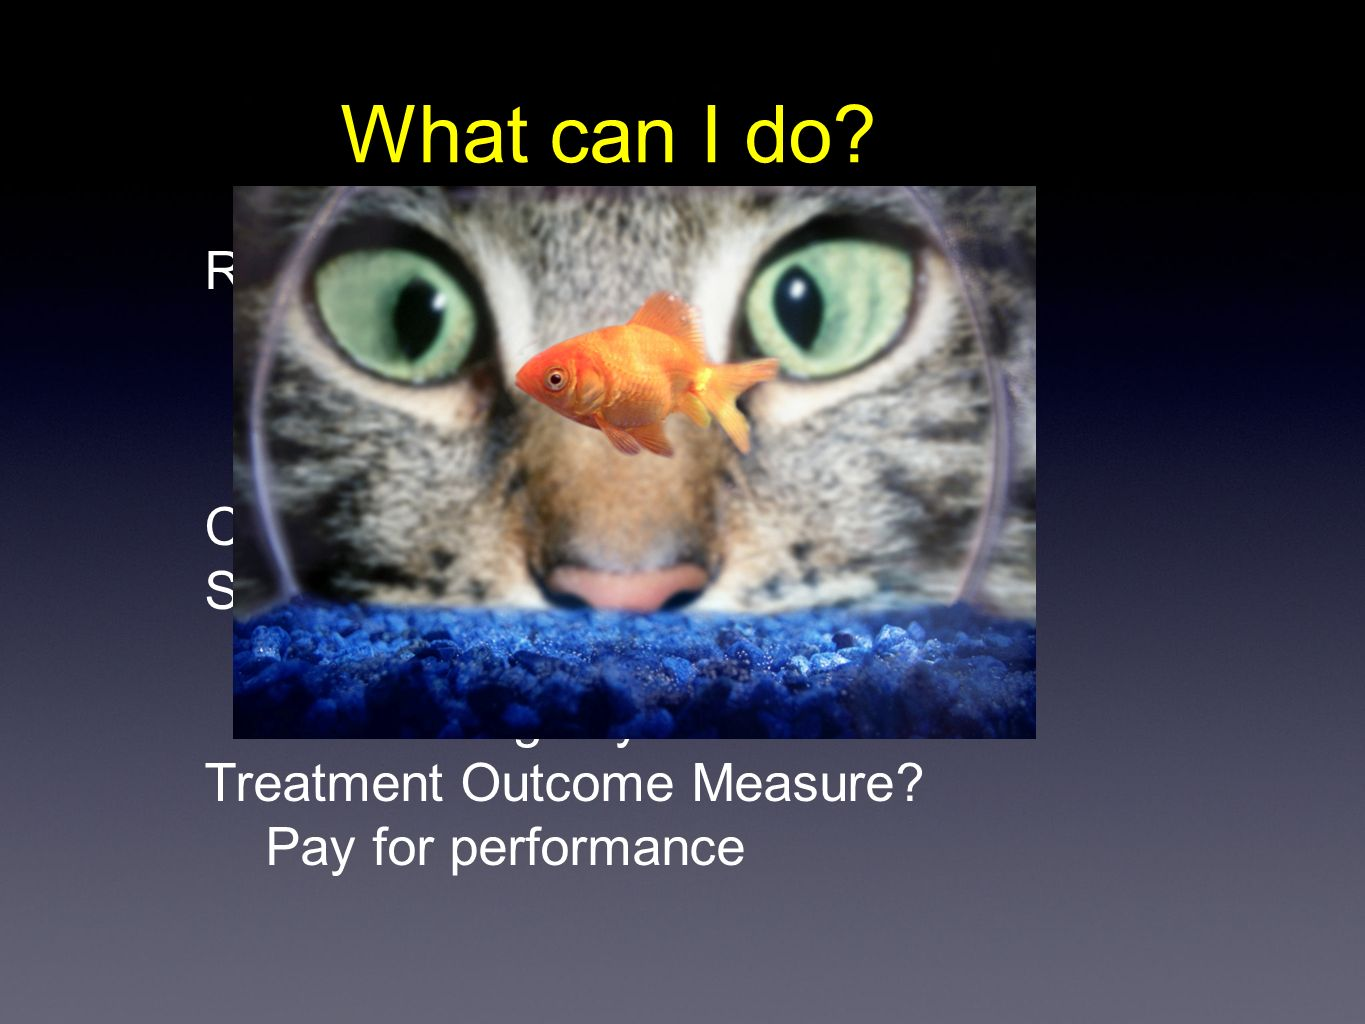 Reimbursement Fee for Service Global Payment Bundled Payment Contract ? Strategic Pathway ? RCT based Patient Registry based Treatment Outcome Measure